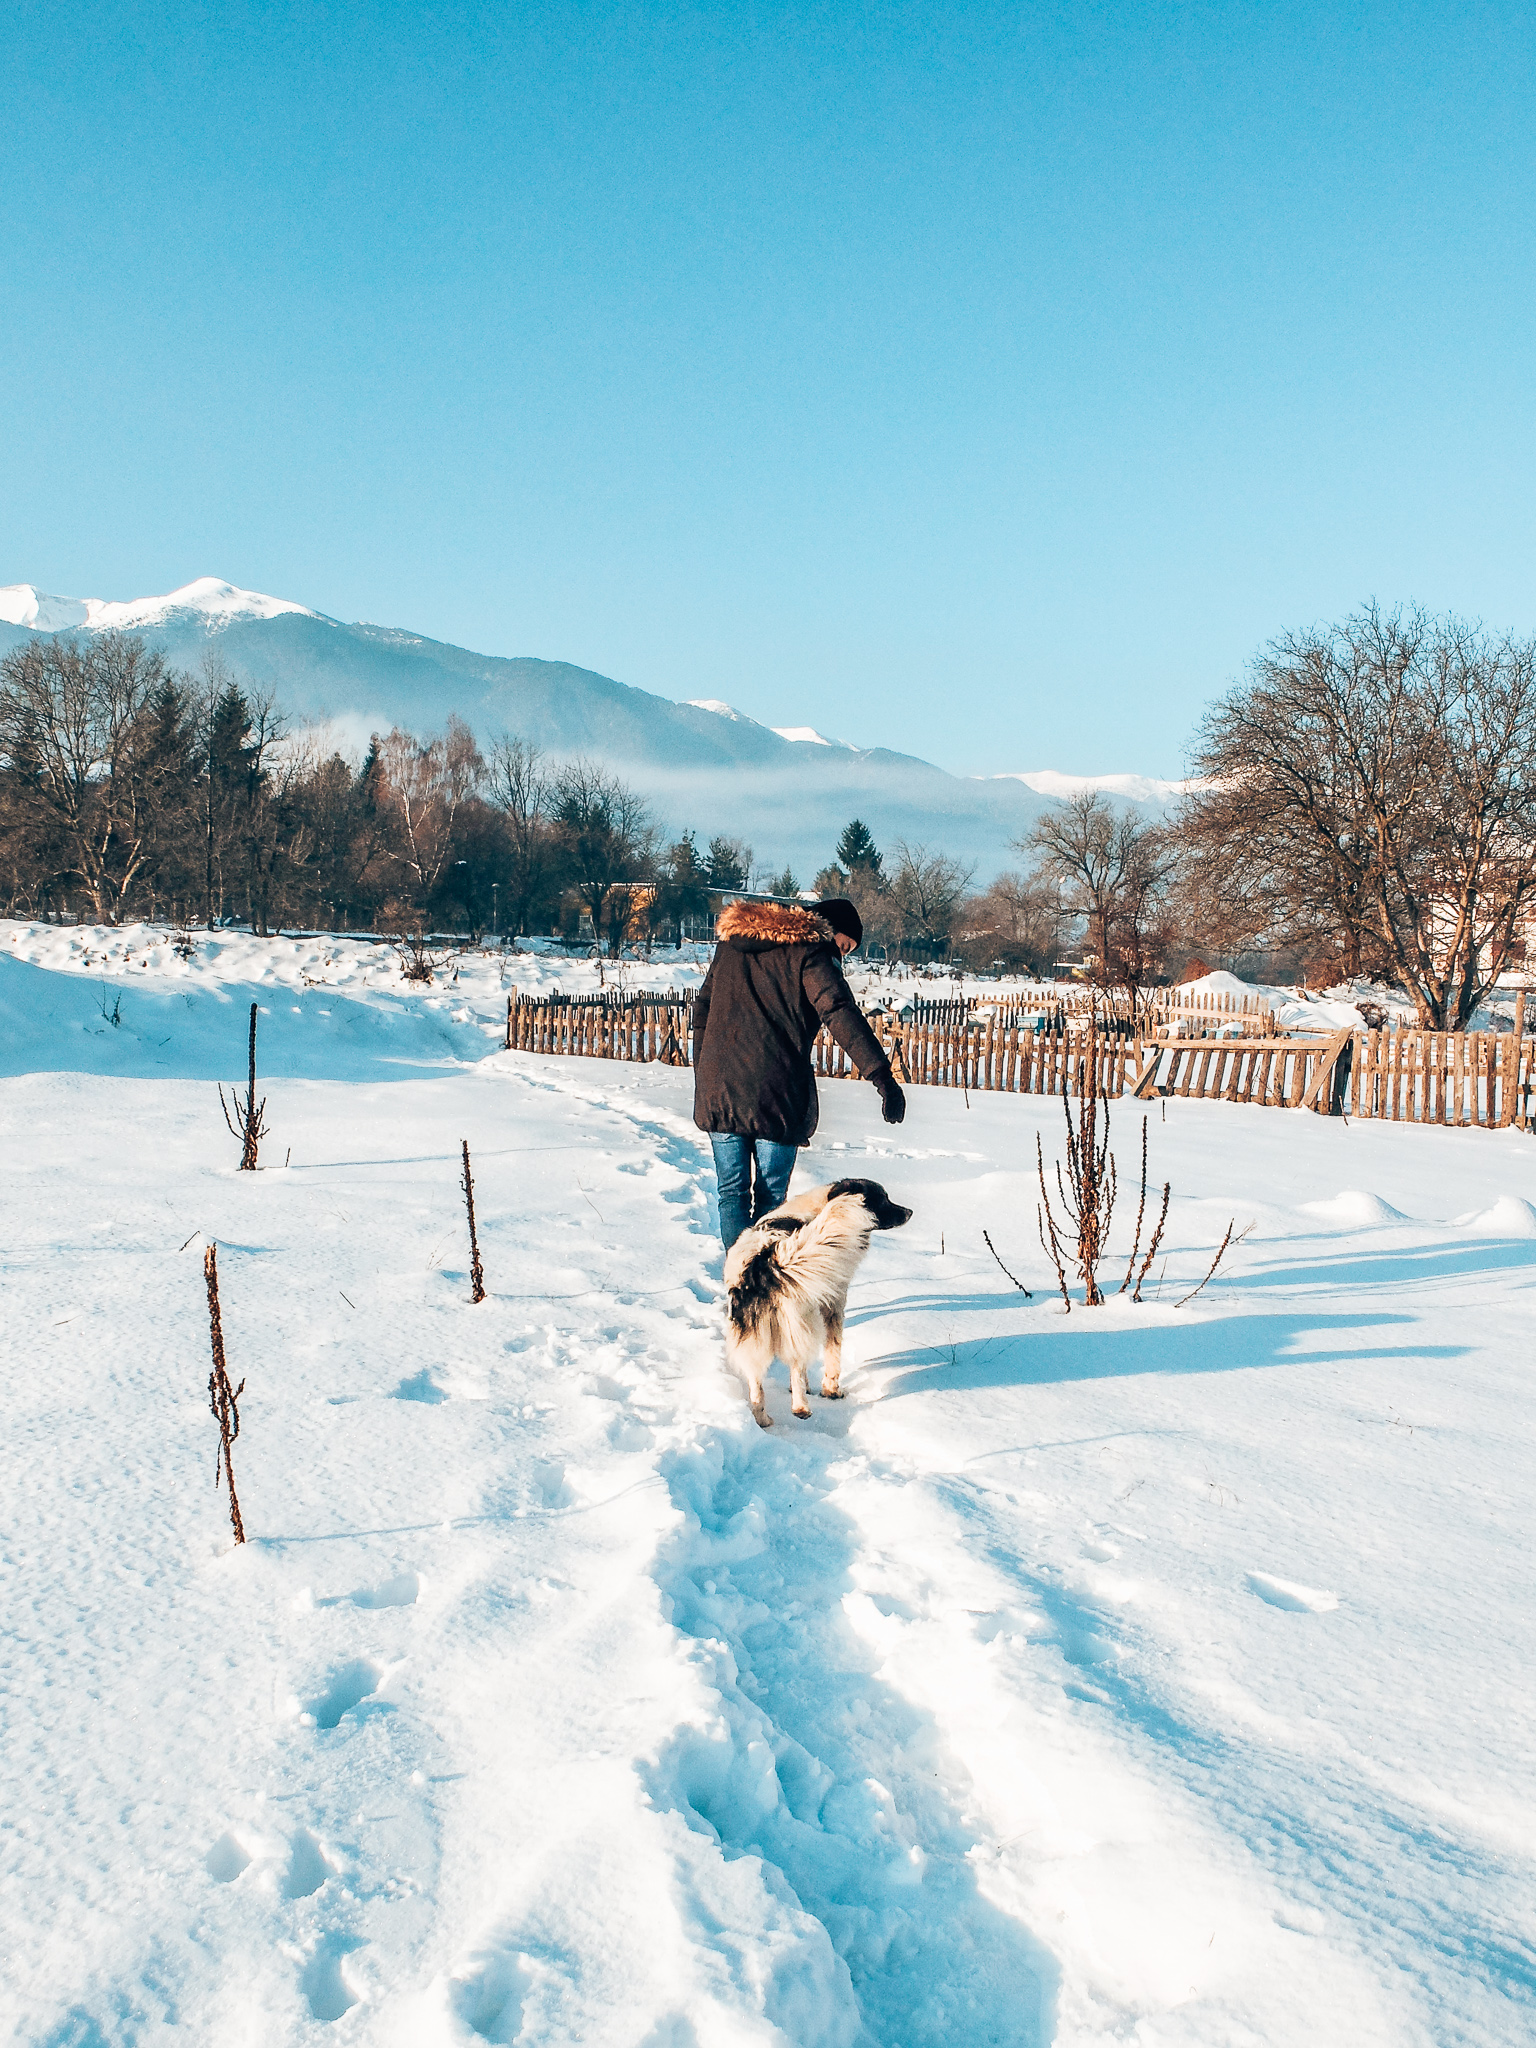 Man and dog walking in snowy mountains